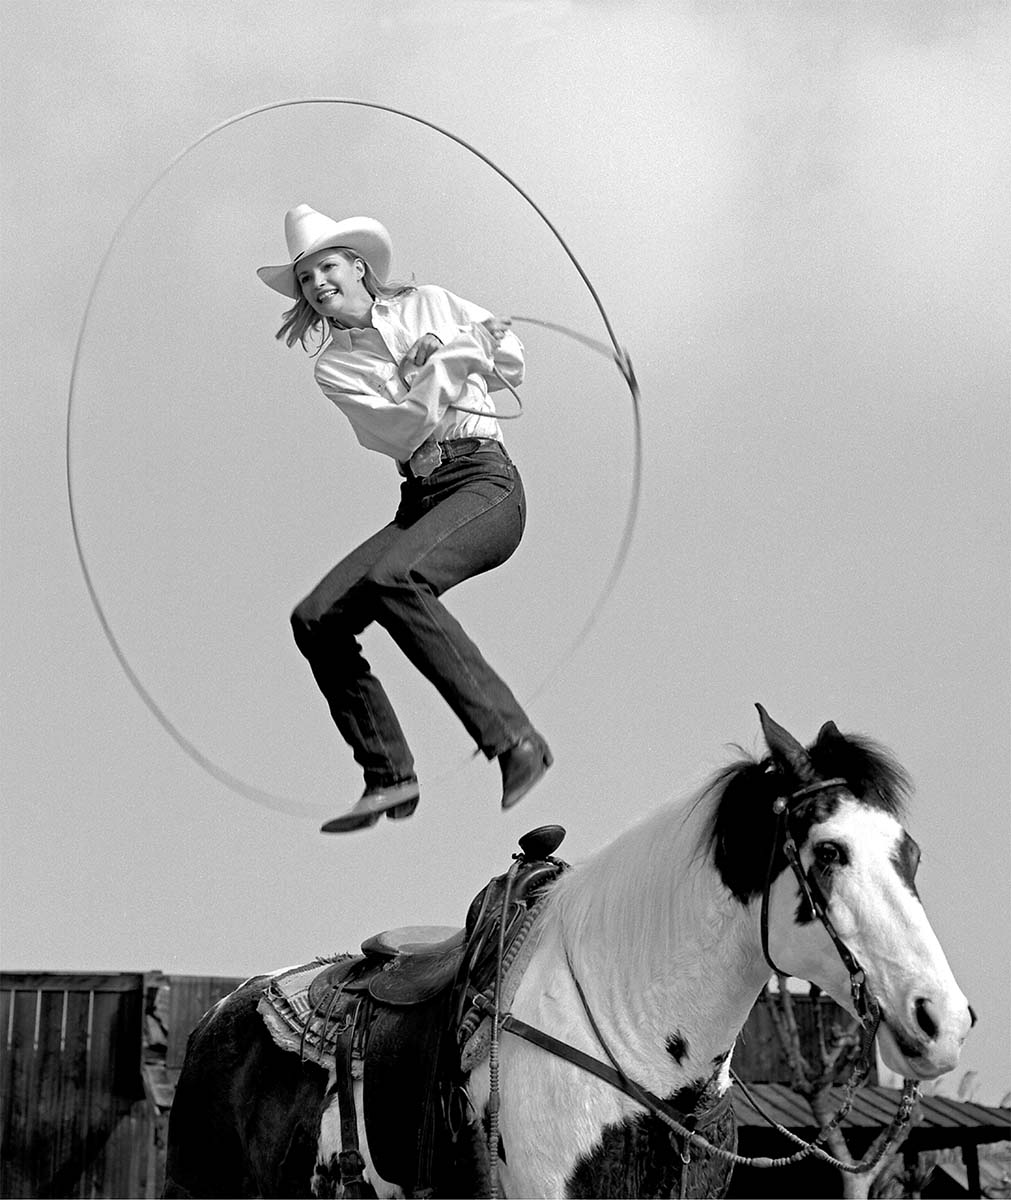 Janna Copley, Riata Ranch, Exeter, California 1995. Silver gelatin print by William Shepley. P.602.023